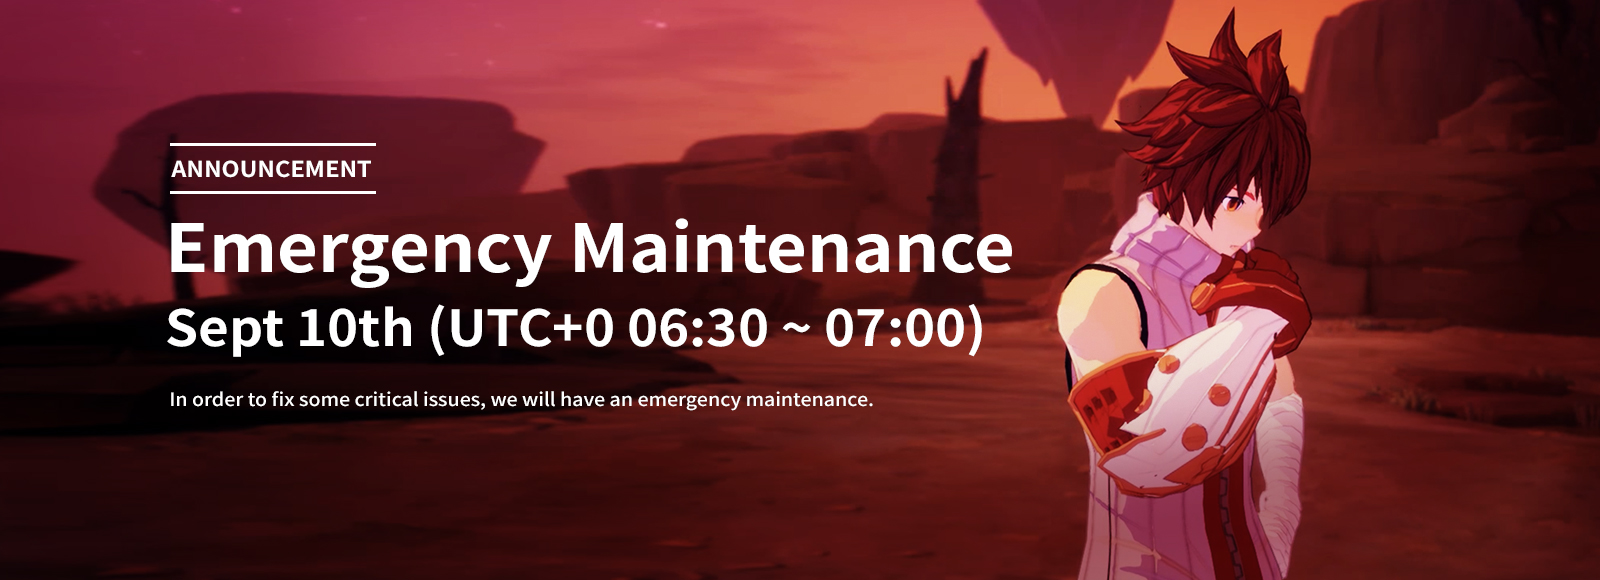 September 10th Emergency Maintenance Announcement